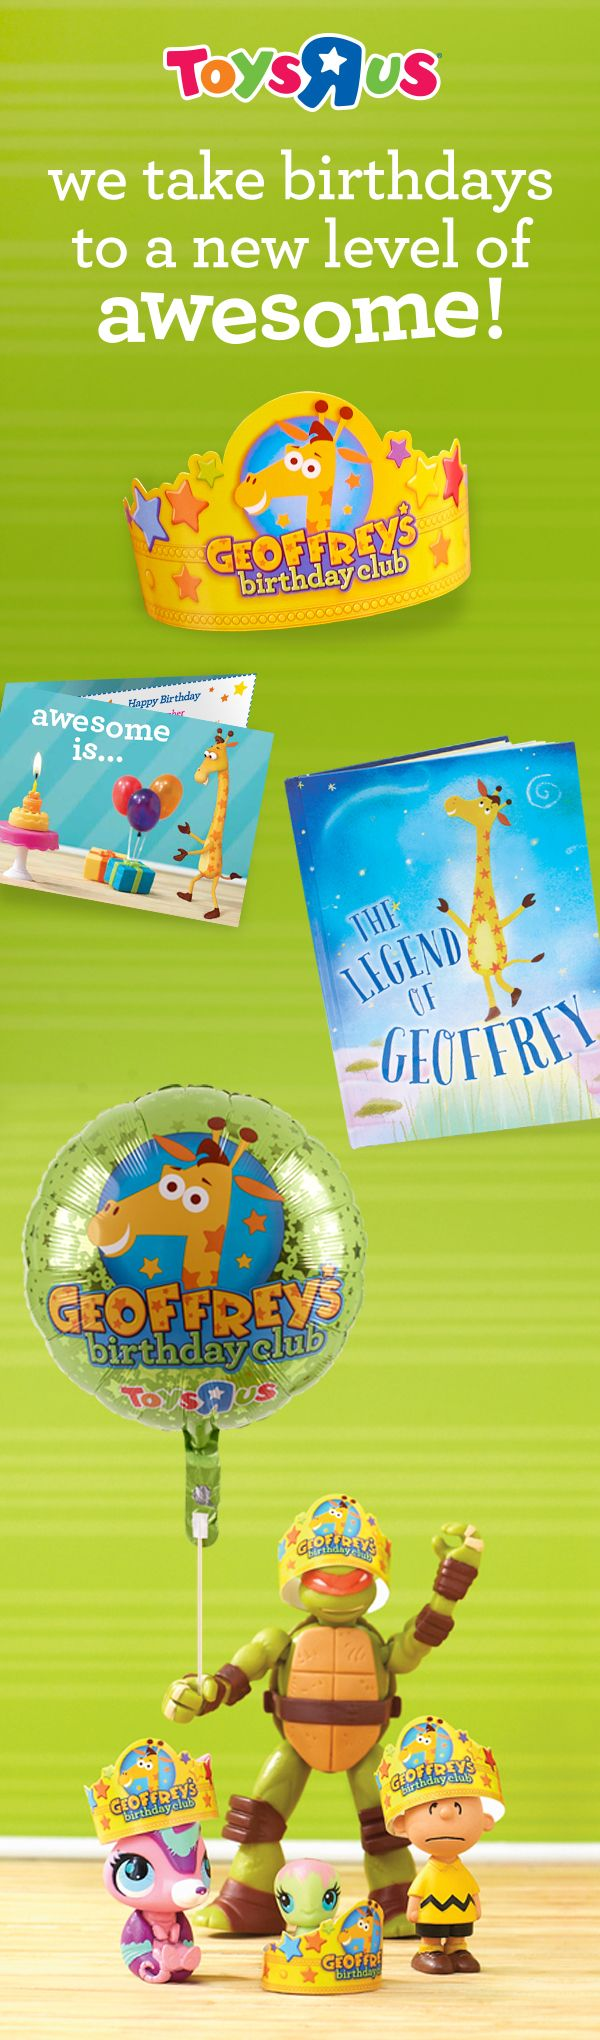 This isn't any birthday club, this is Geoffrey's Birthday Club! When you sign up, you'll get FREE birthday gifts, including a card from Geoffrey, a crown and ballon, plus The Legend of Geoffrey storybook. (Find out how he got his stars!) Celebrate your birthday with us!